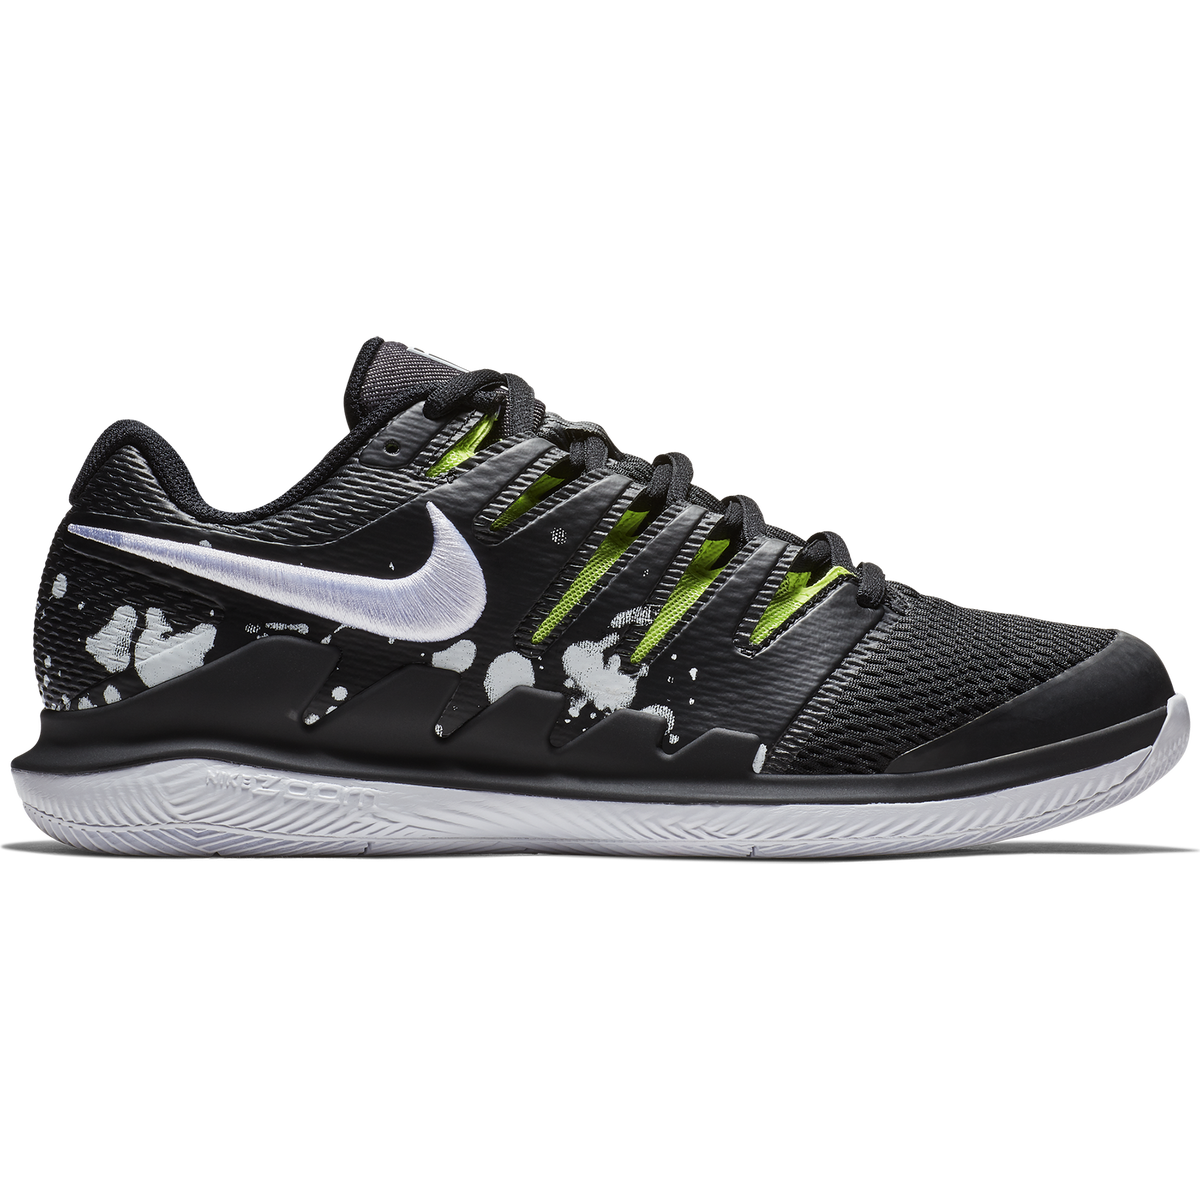 3e1cae305e508 NikeCourt Air Zoom Vapor X Premium Men's Tennis Shoe - Black/Green